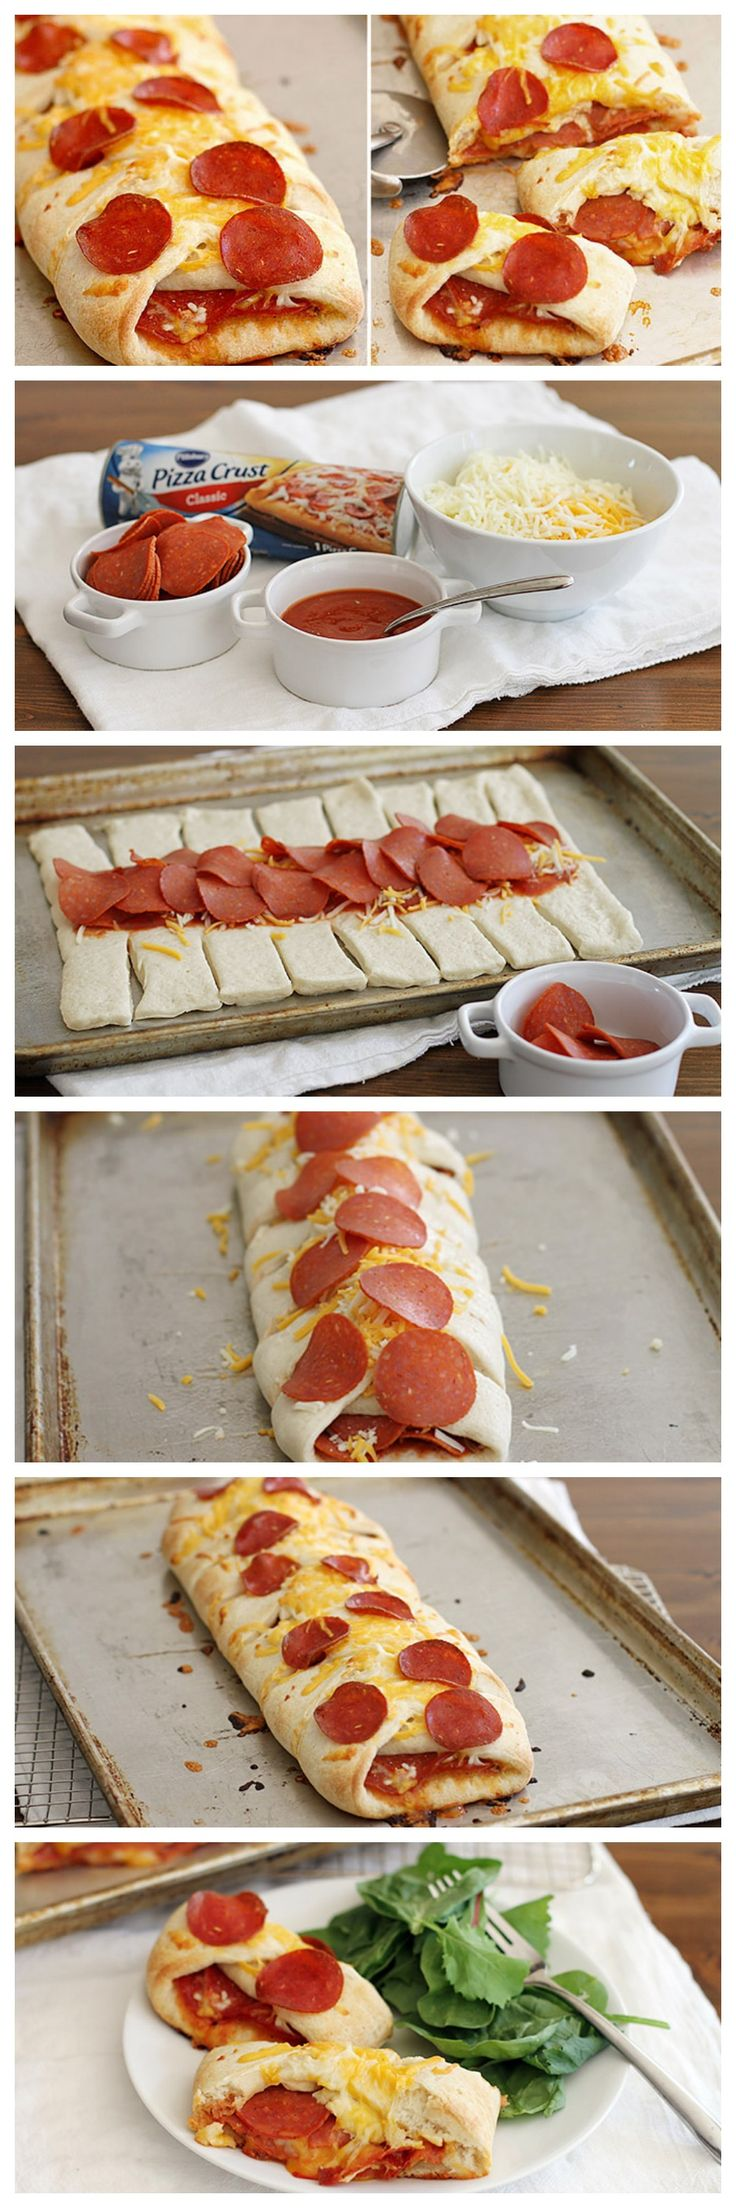 Pepperoni Pizza Braid - Another fun way to do Friday Night Pizza right!